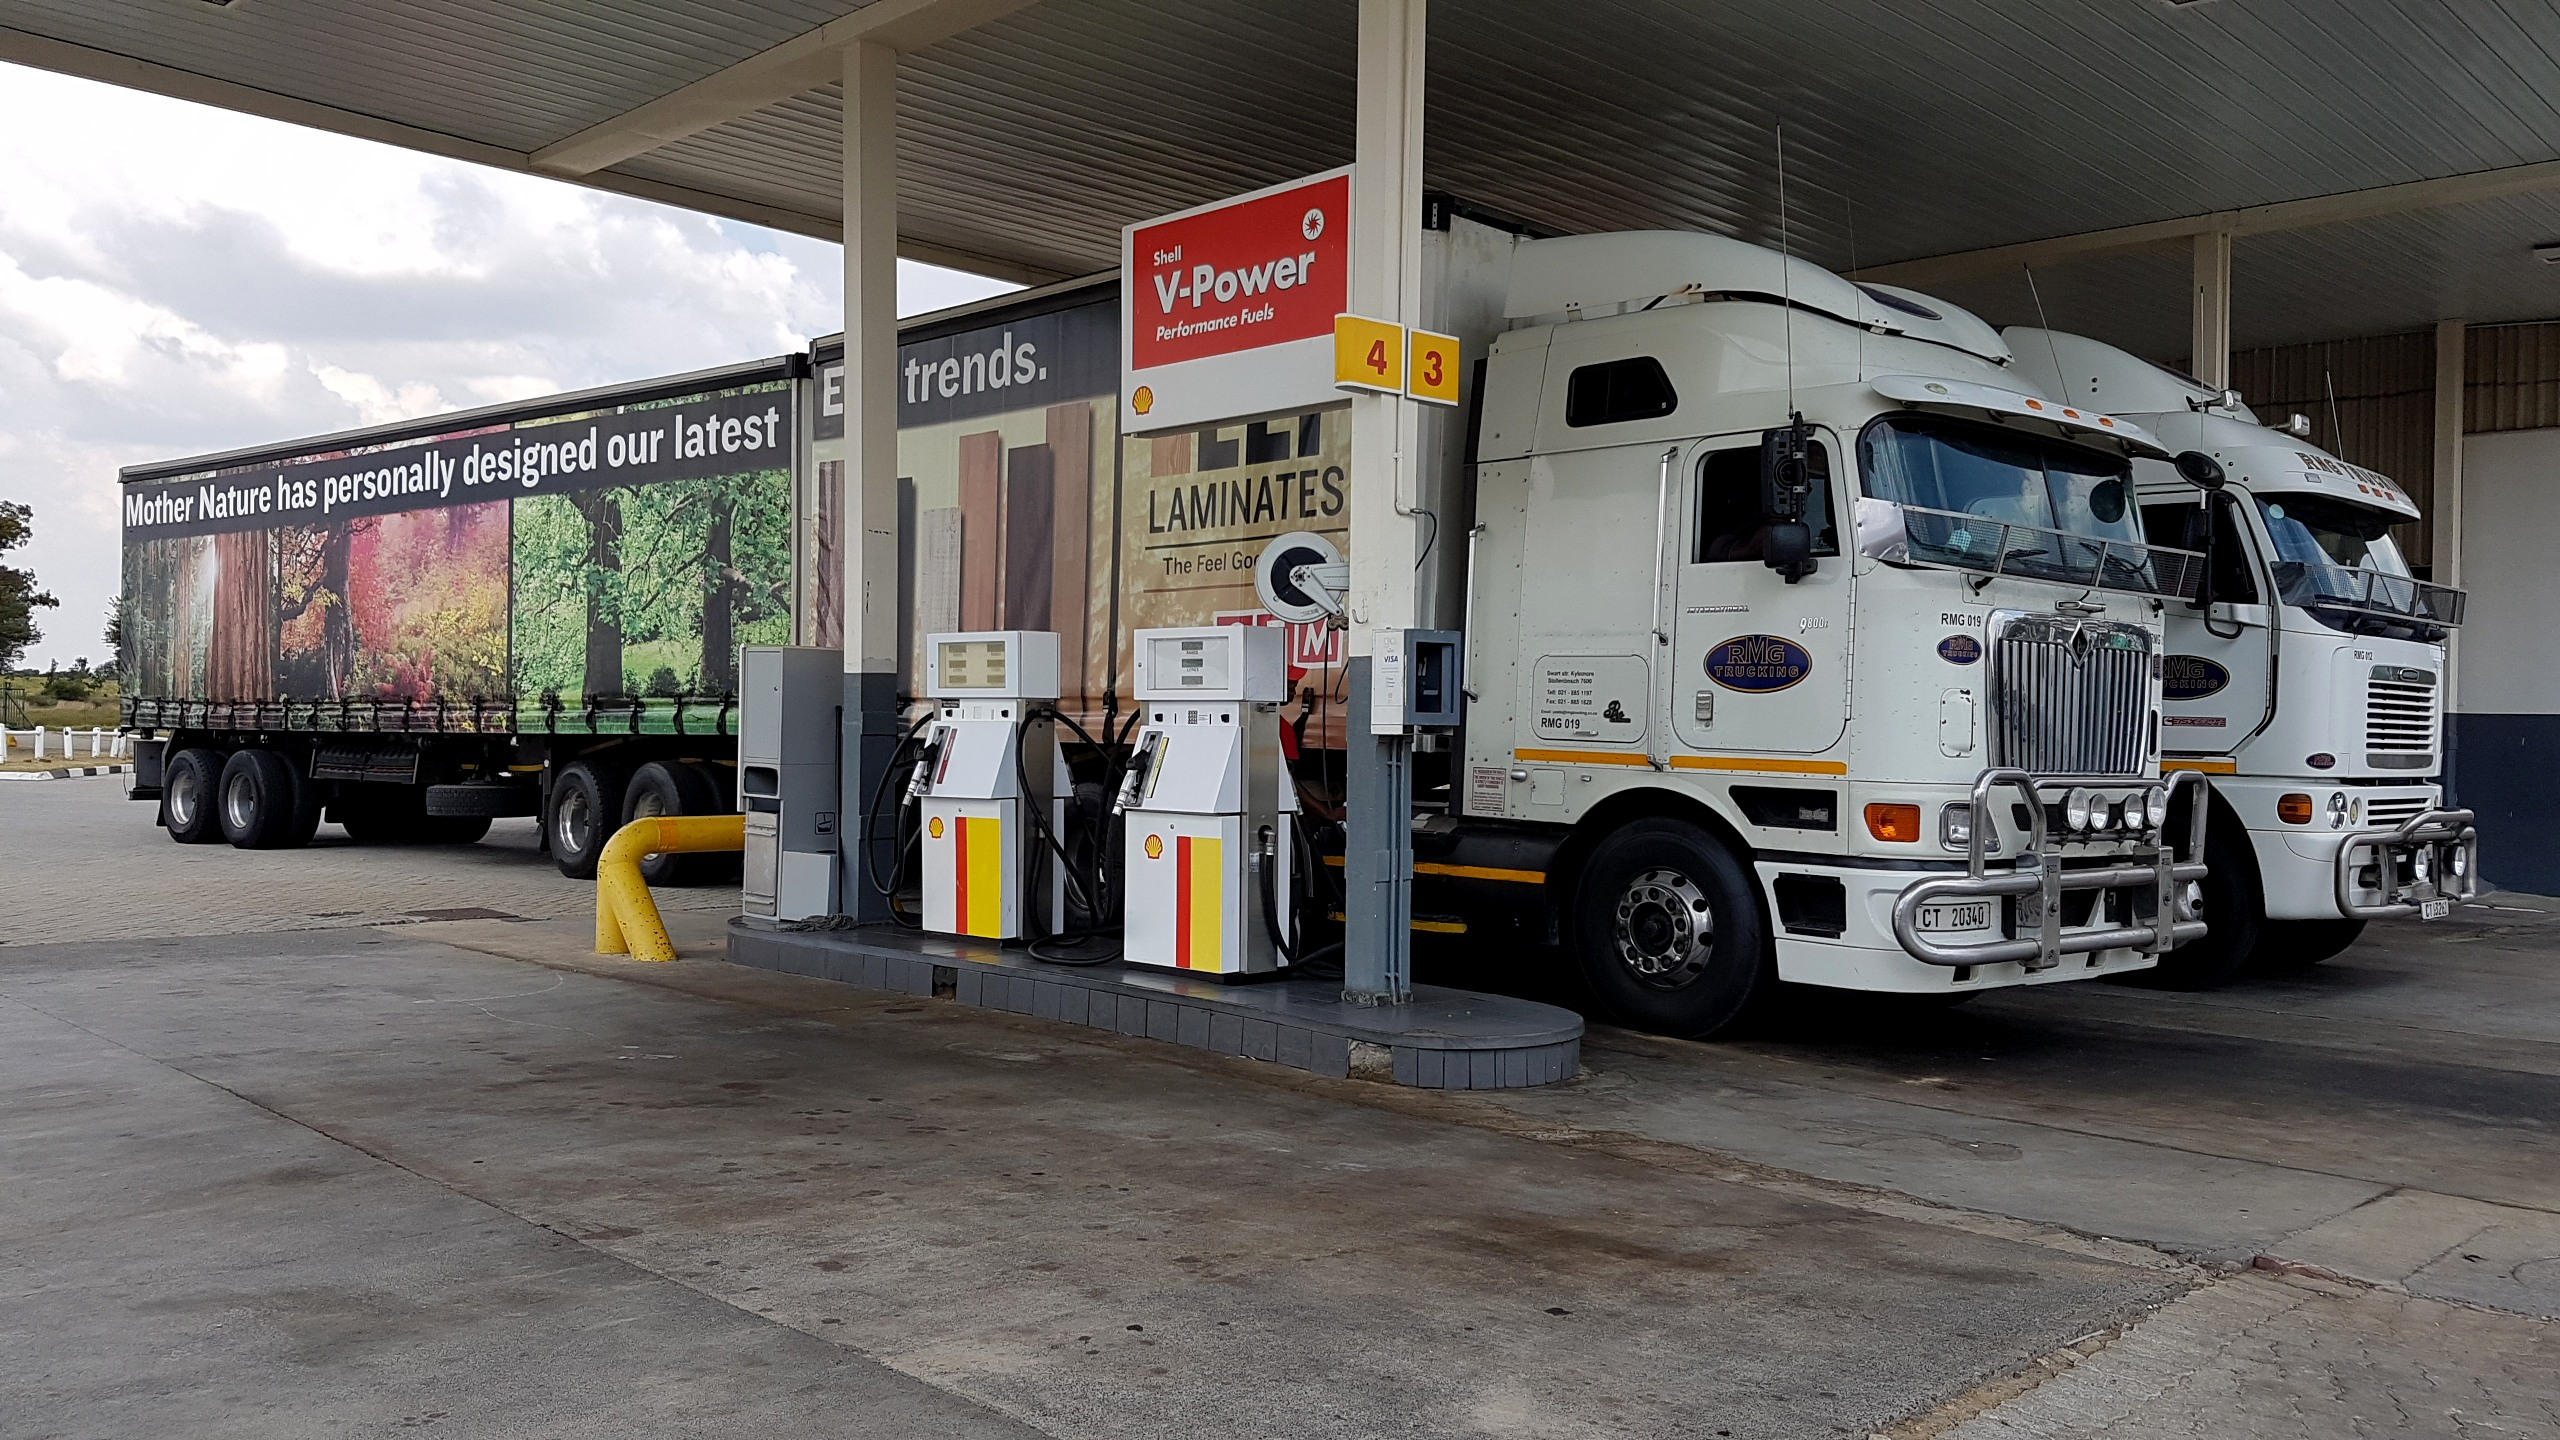 As a result of January seeing one of the strongest Rand performances in many months, South Africans can look forward to cheaper fuel prices in February. Diesel is set to drop by 17 cents a litre and petrol by 32 cents a litre according to the AA. This follows a year which saw some of the highest fuel prices in the country's history due to political events in the country. In other words, due to Zuma's awful shenanigans.